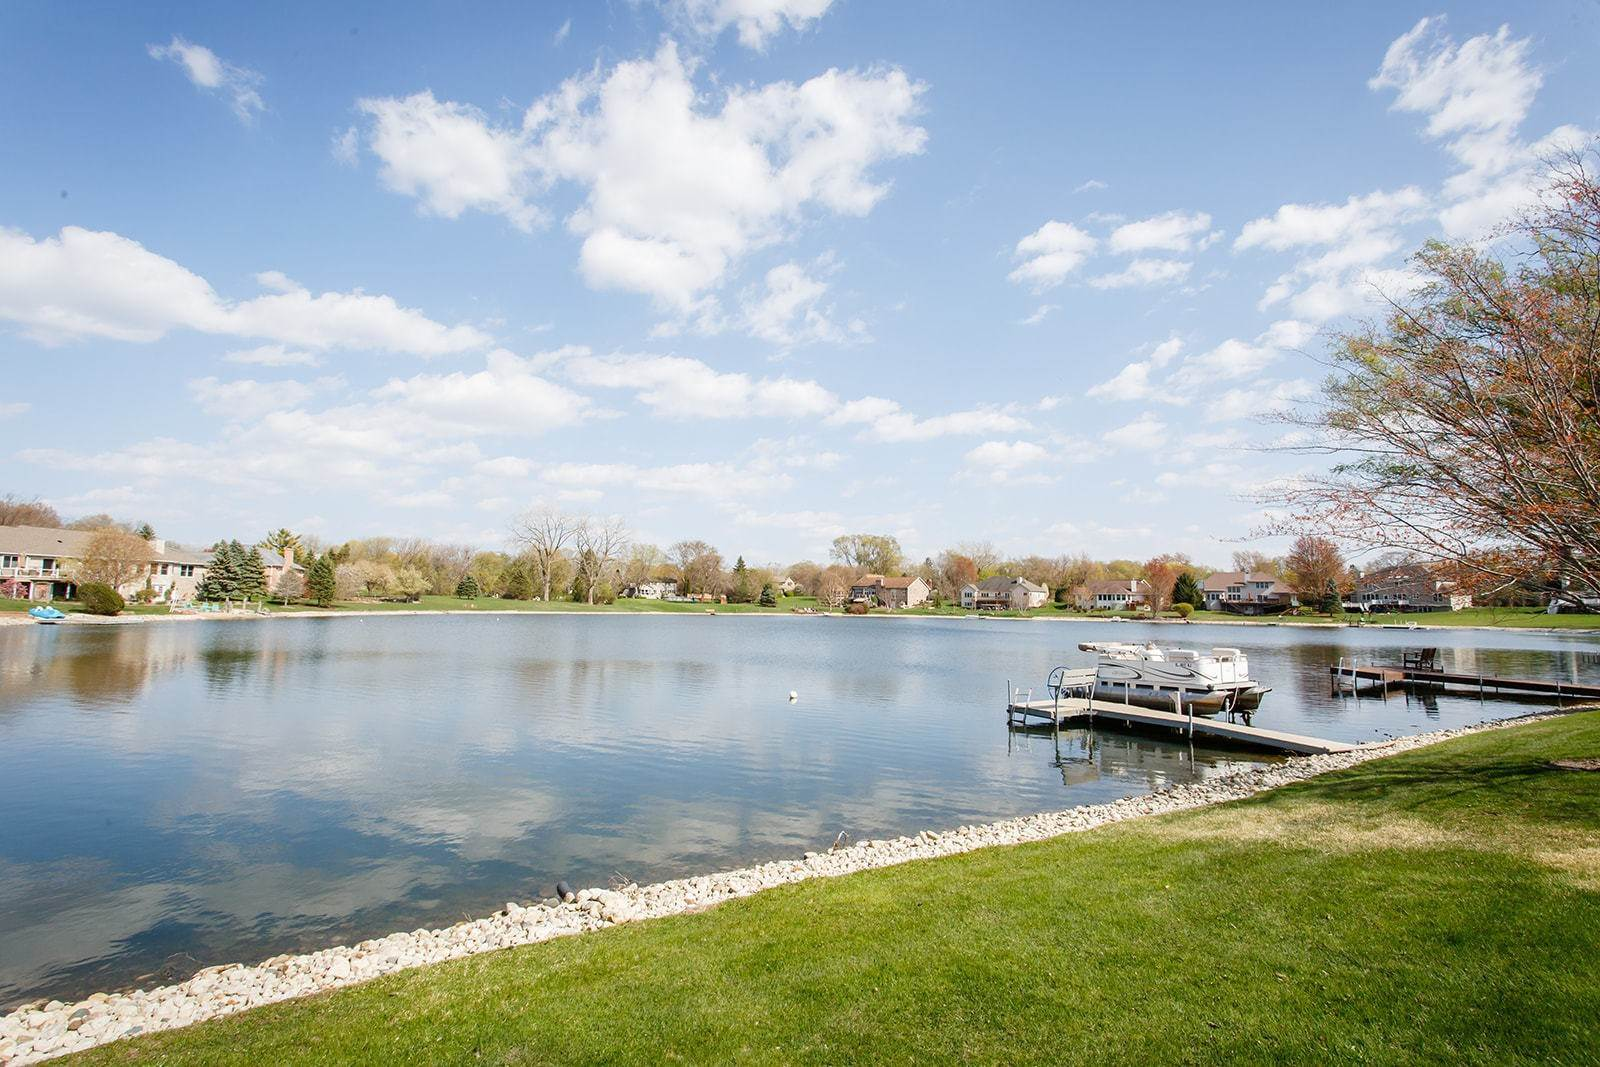 Single Family Homes for Sale at 2900 Spruce Terrace Island Lake, Illinois 60042 United States